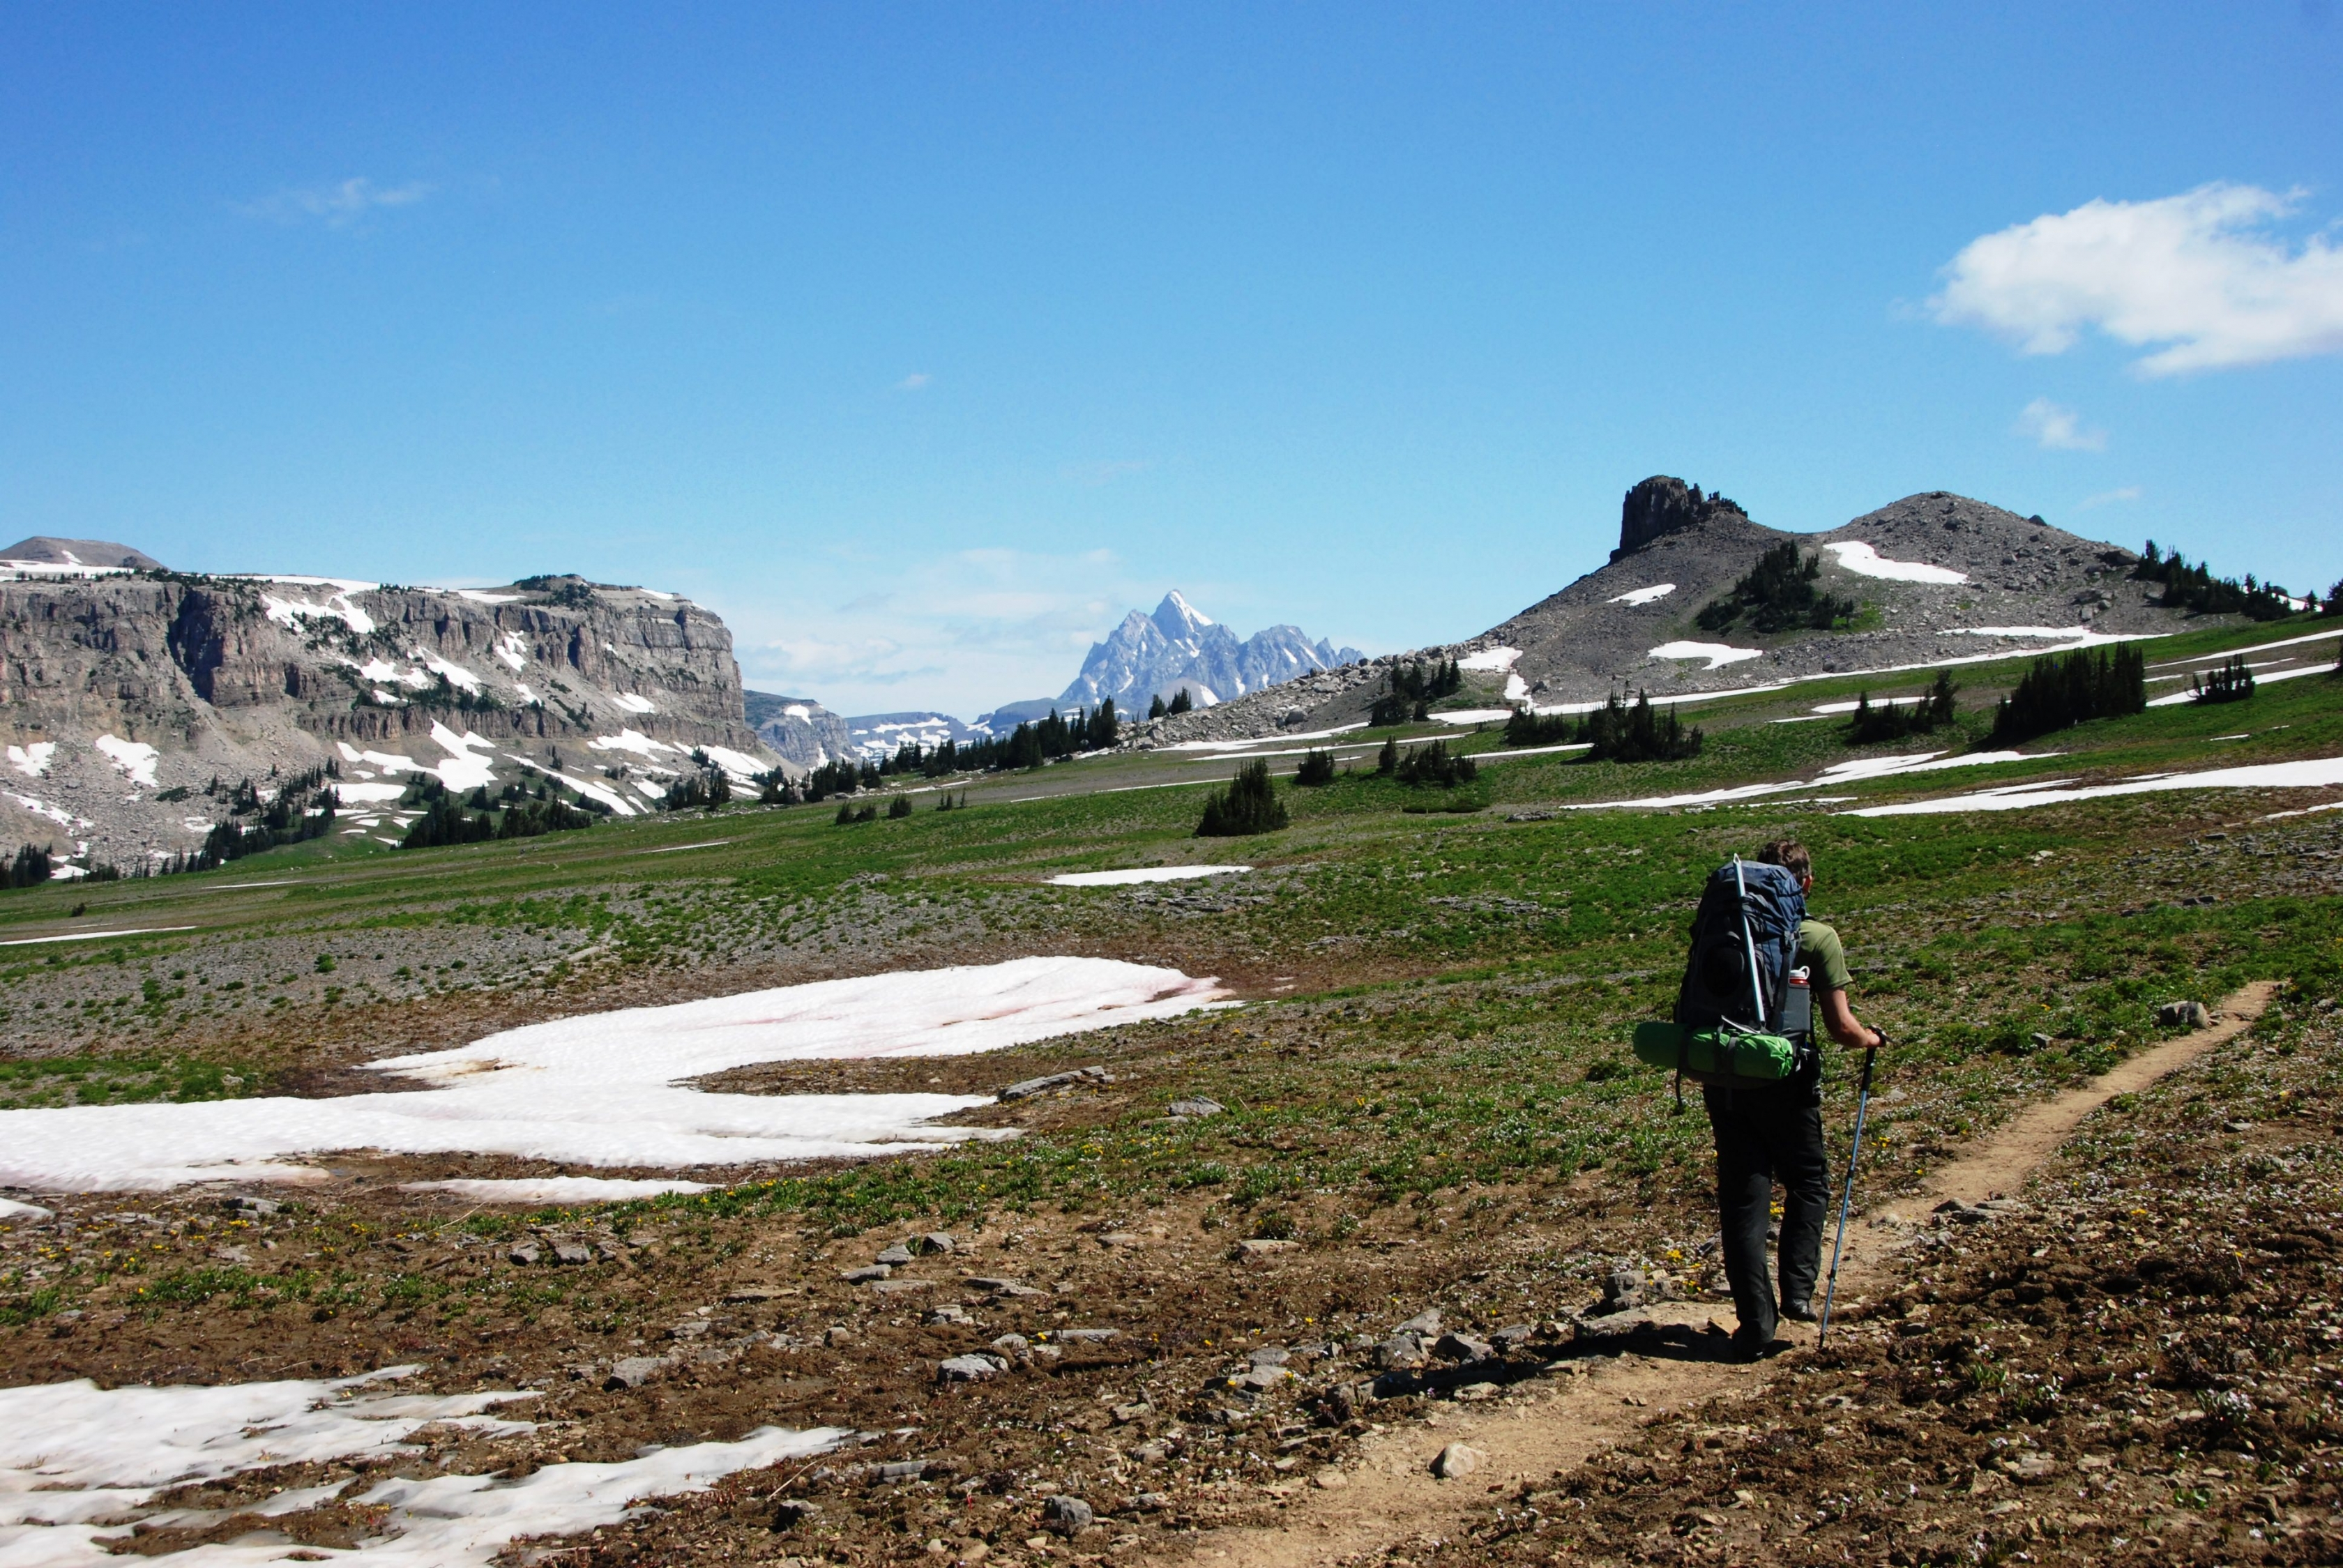 A solo hiker along a crest trail in Grand Teton National Park.